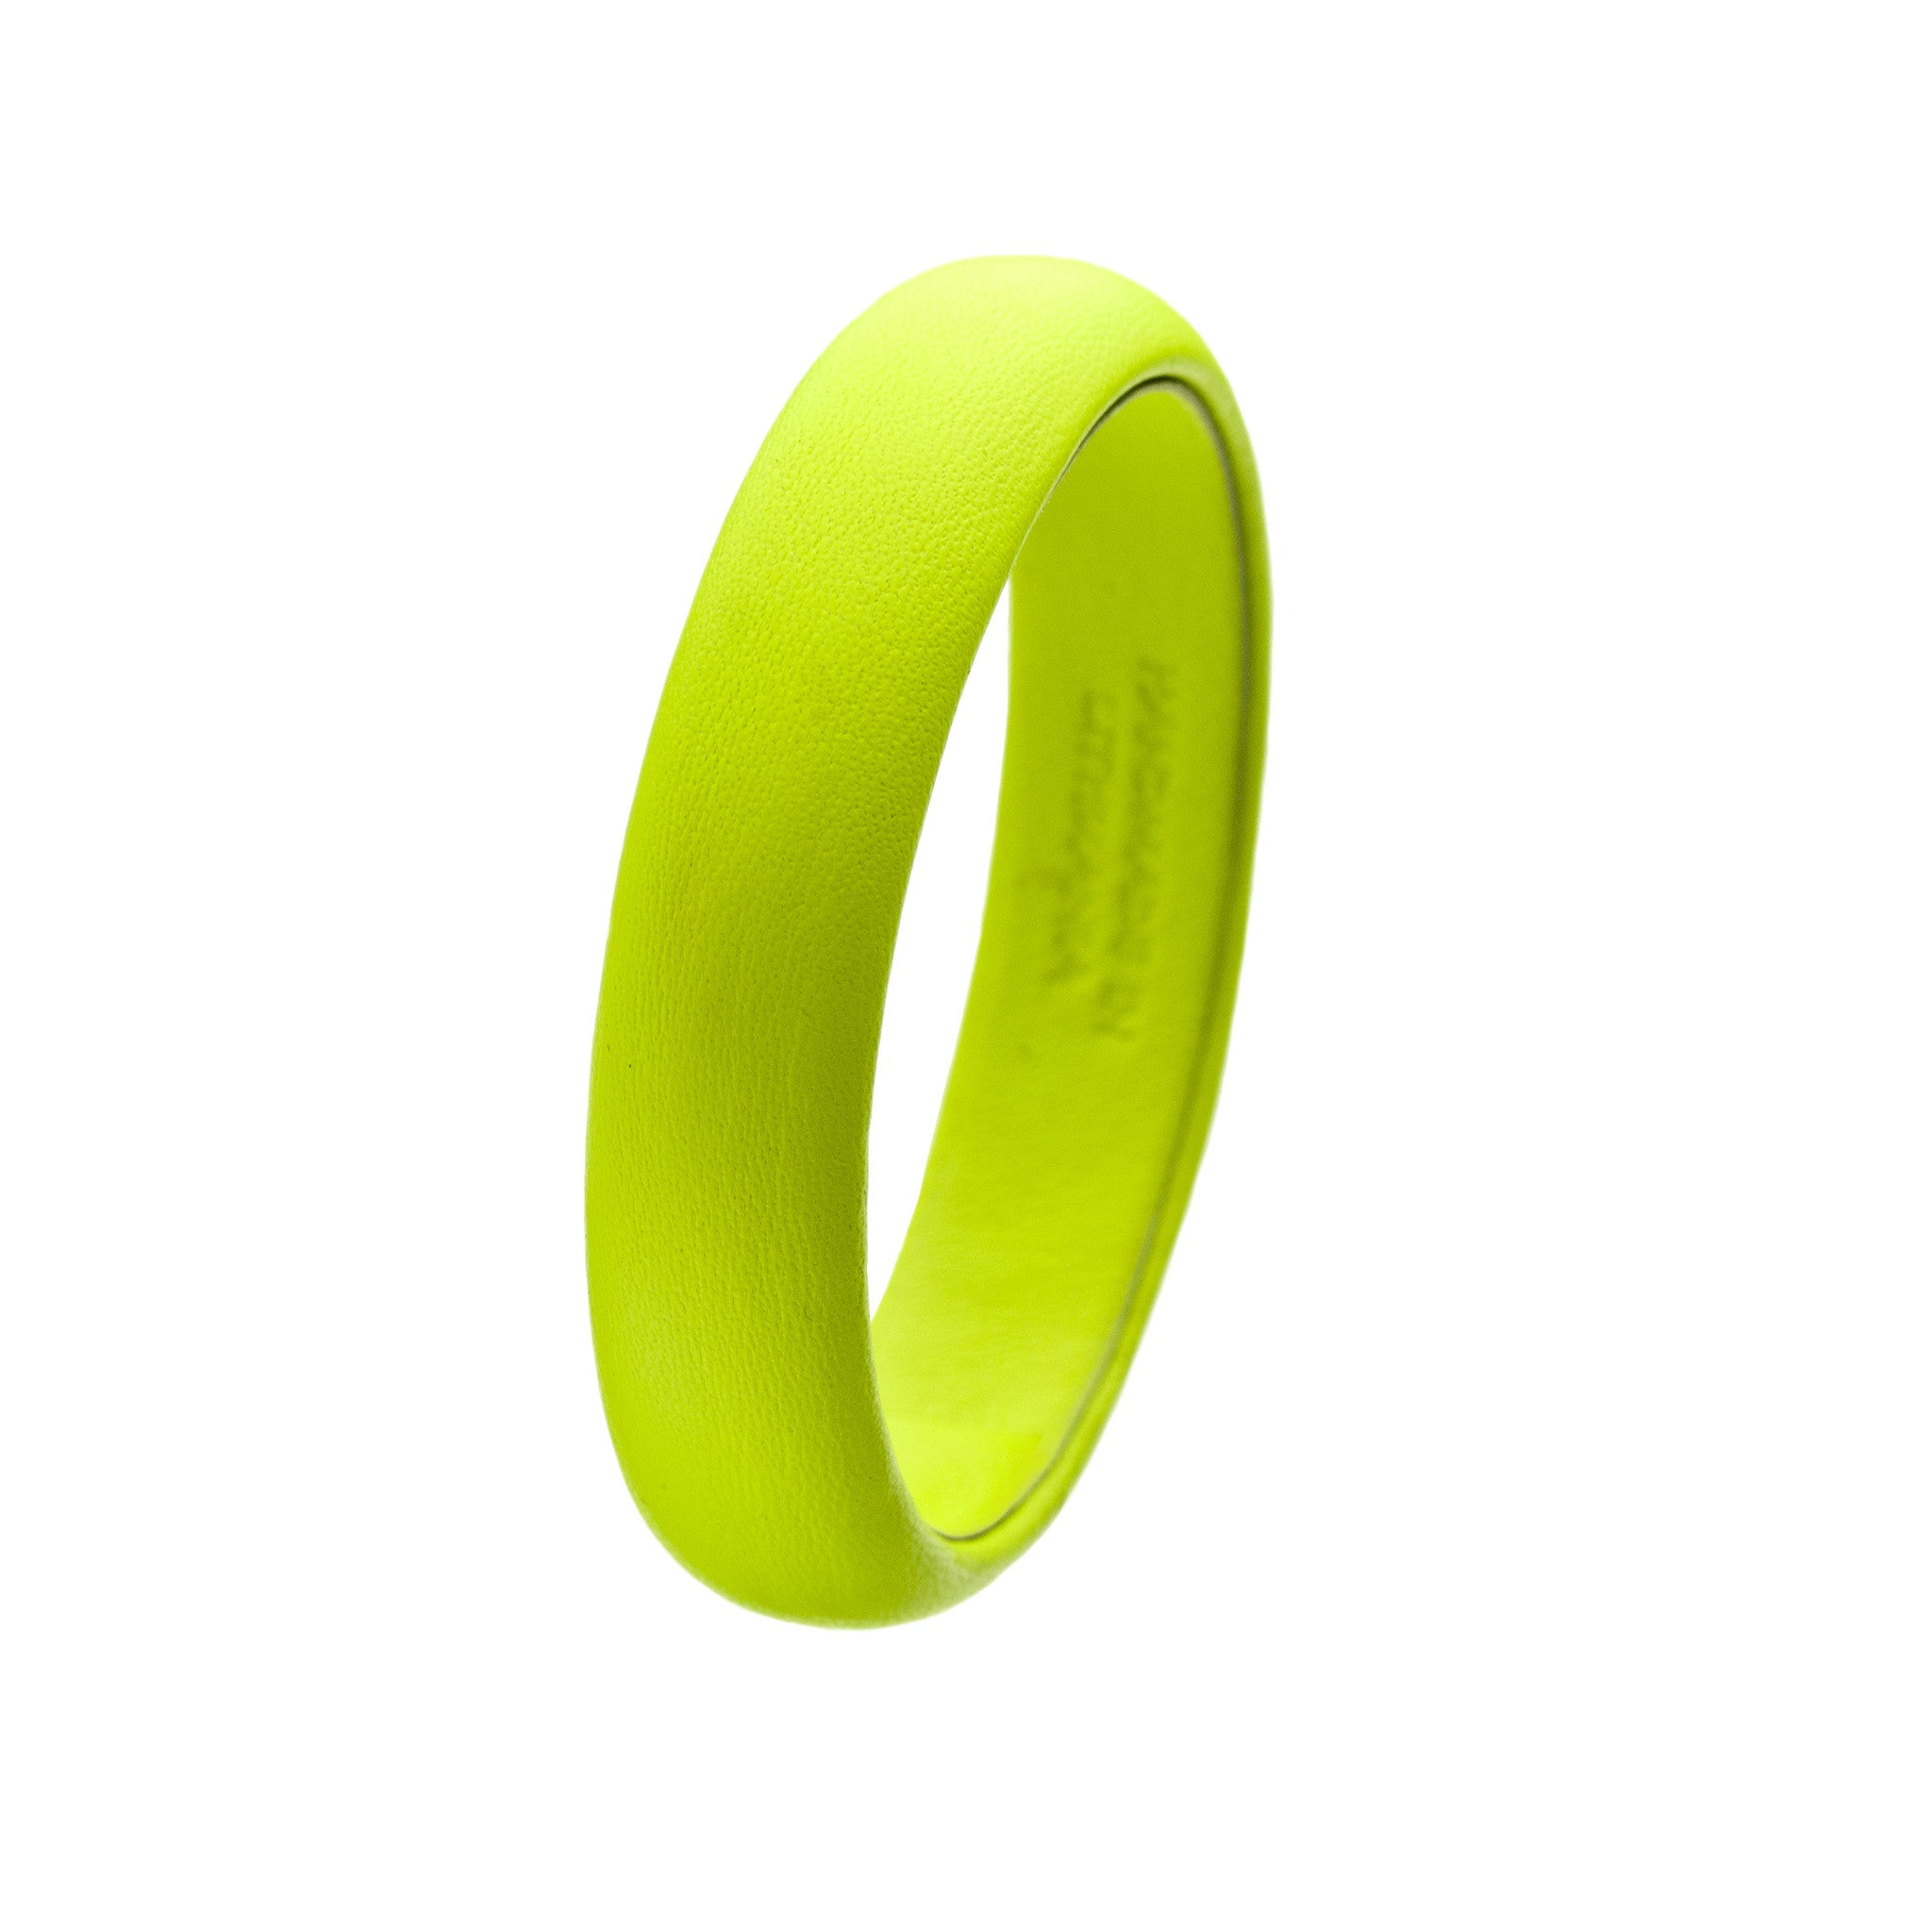 The Aria Bangle ~ Fluorescent Neon Yellow Lambskin Leather Bangle Bracelet